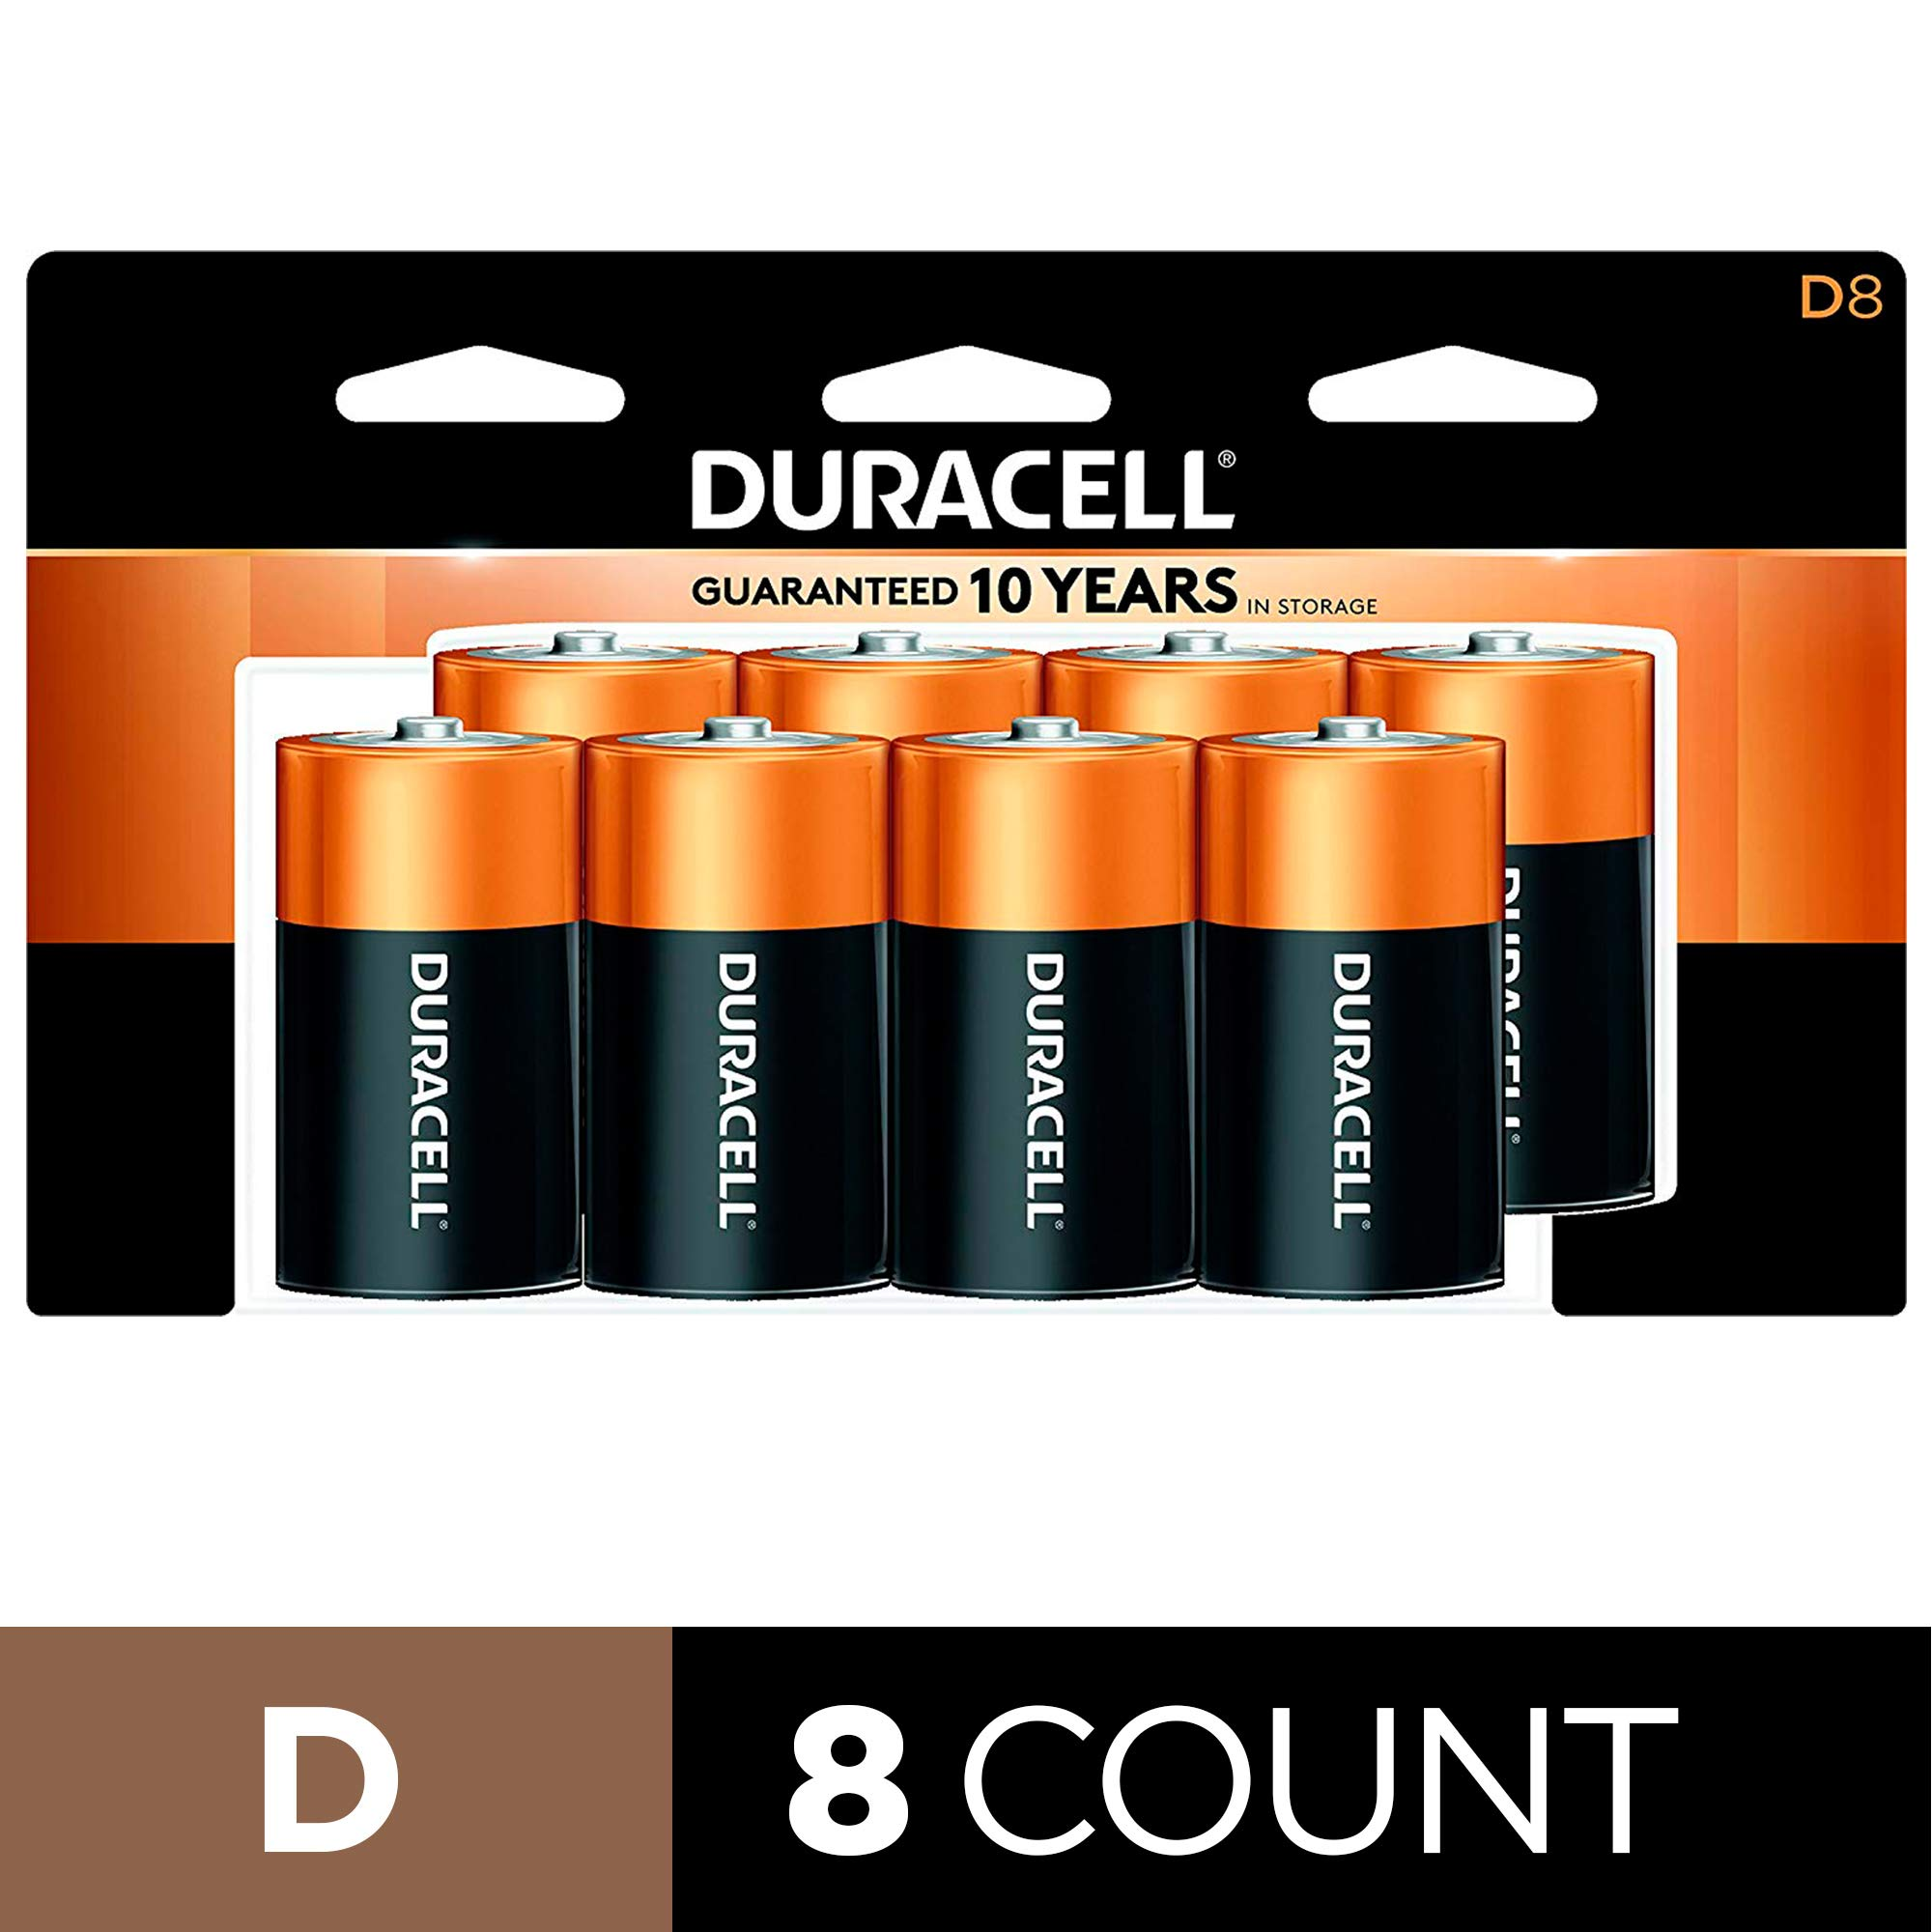 Duracell CopperTop Batteries recloseable all purpose